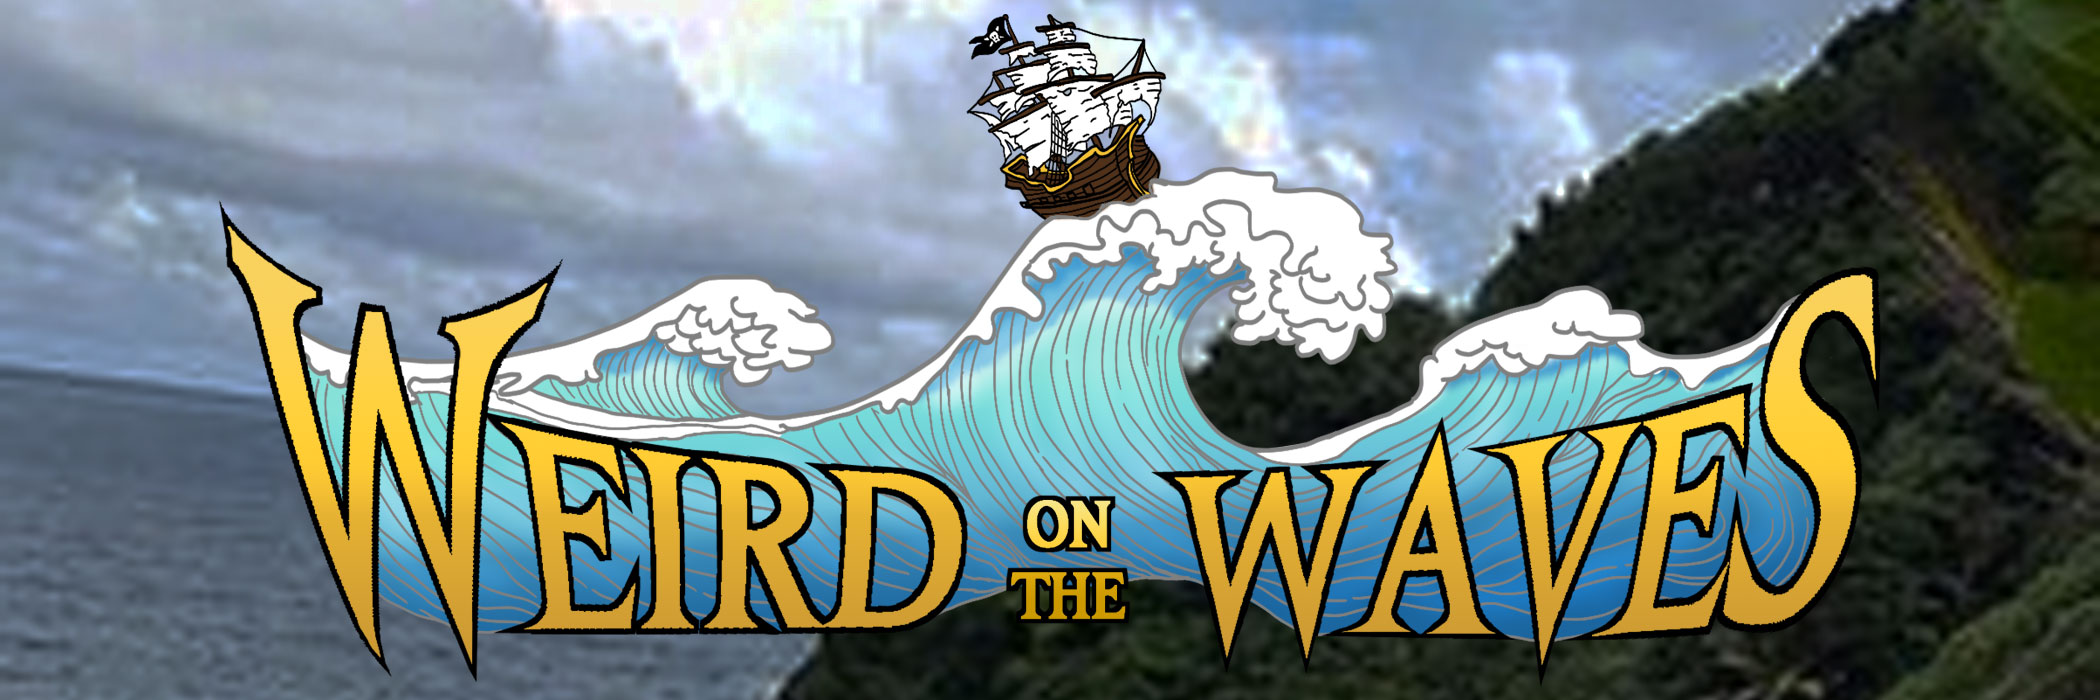 Weird on the Waves (D&D and LotFP)